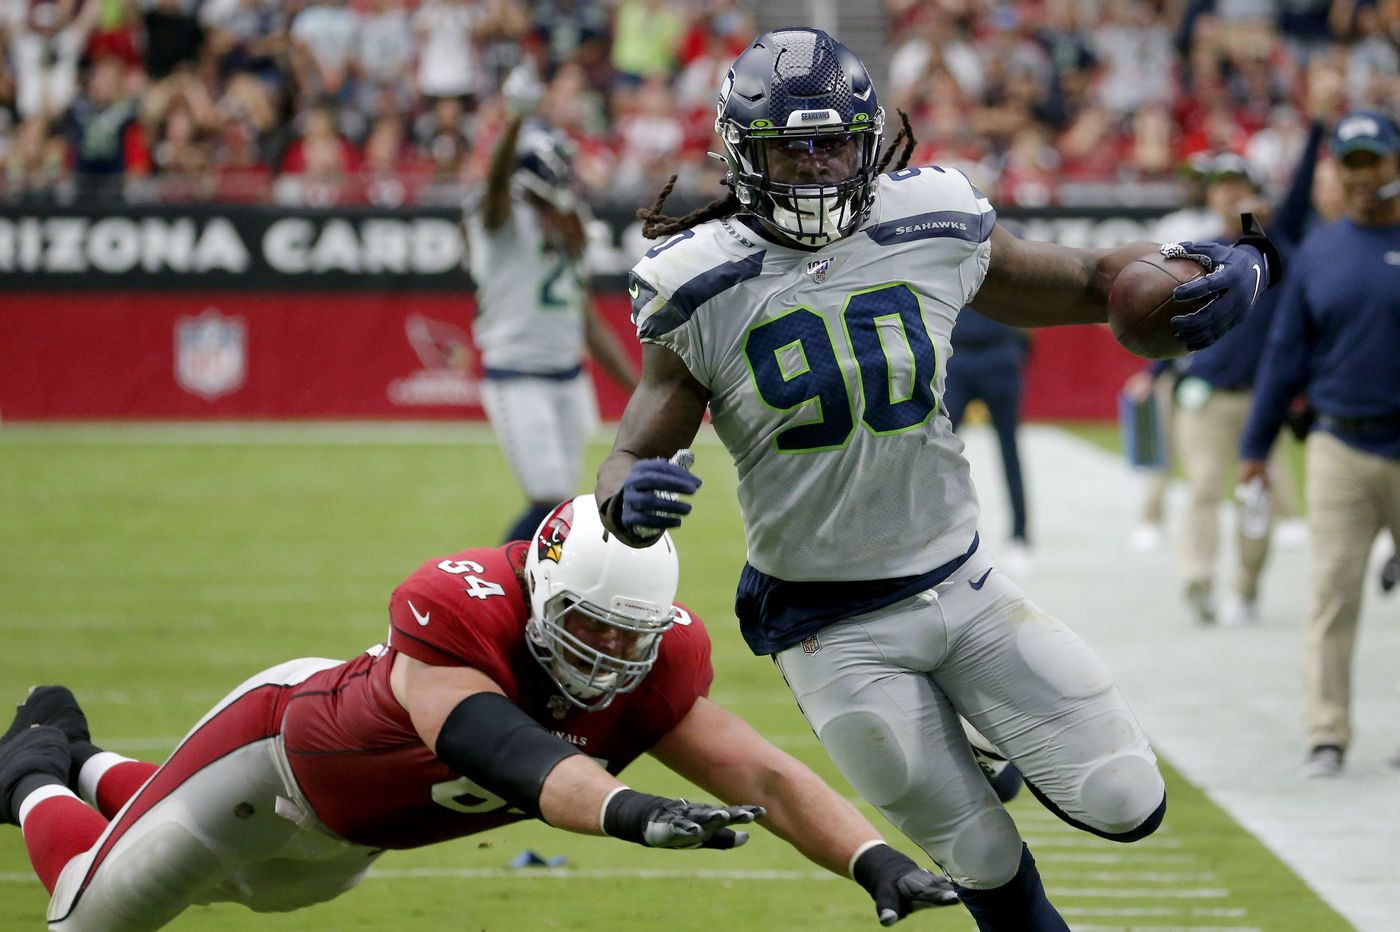 Seattle Times: Will South Carolina native Jadeveon Clowney find a second home in Seattle?